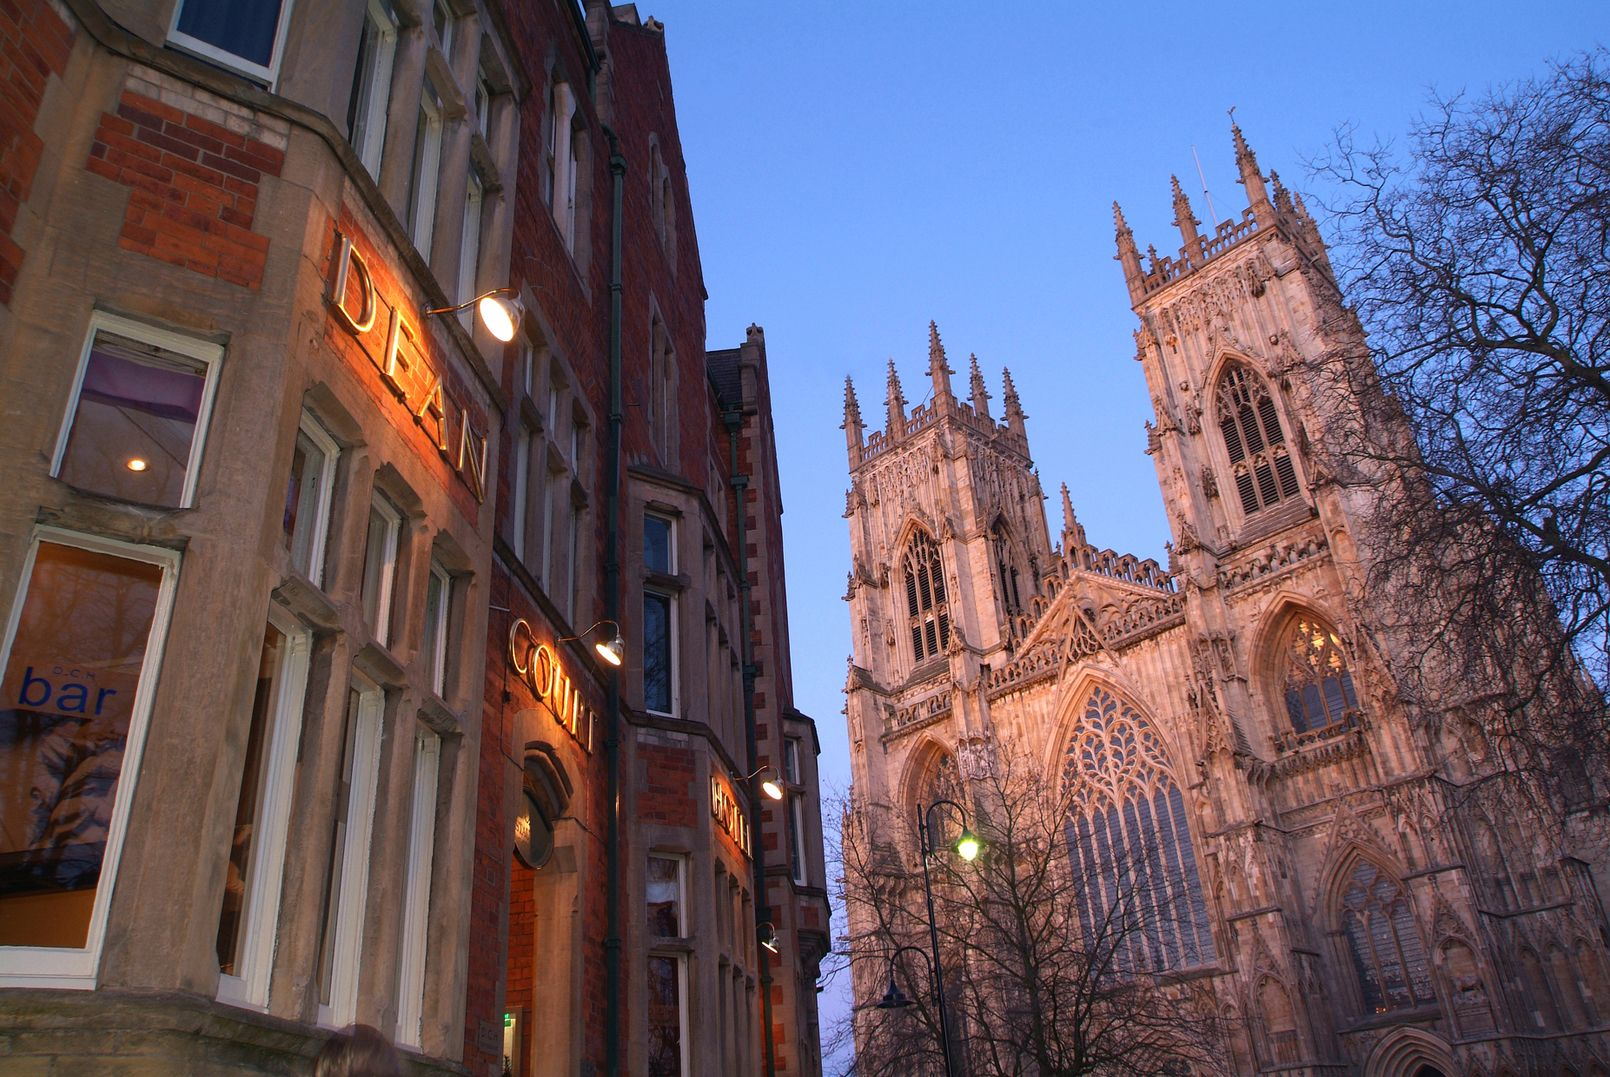 The Best Western Plus Dean Court Hotel Is A 4 Star Located In York And